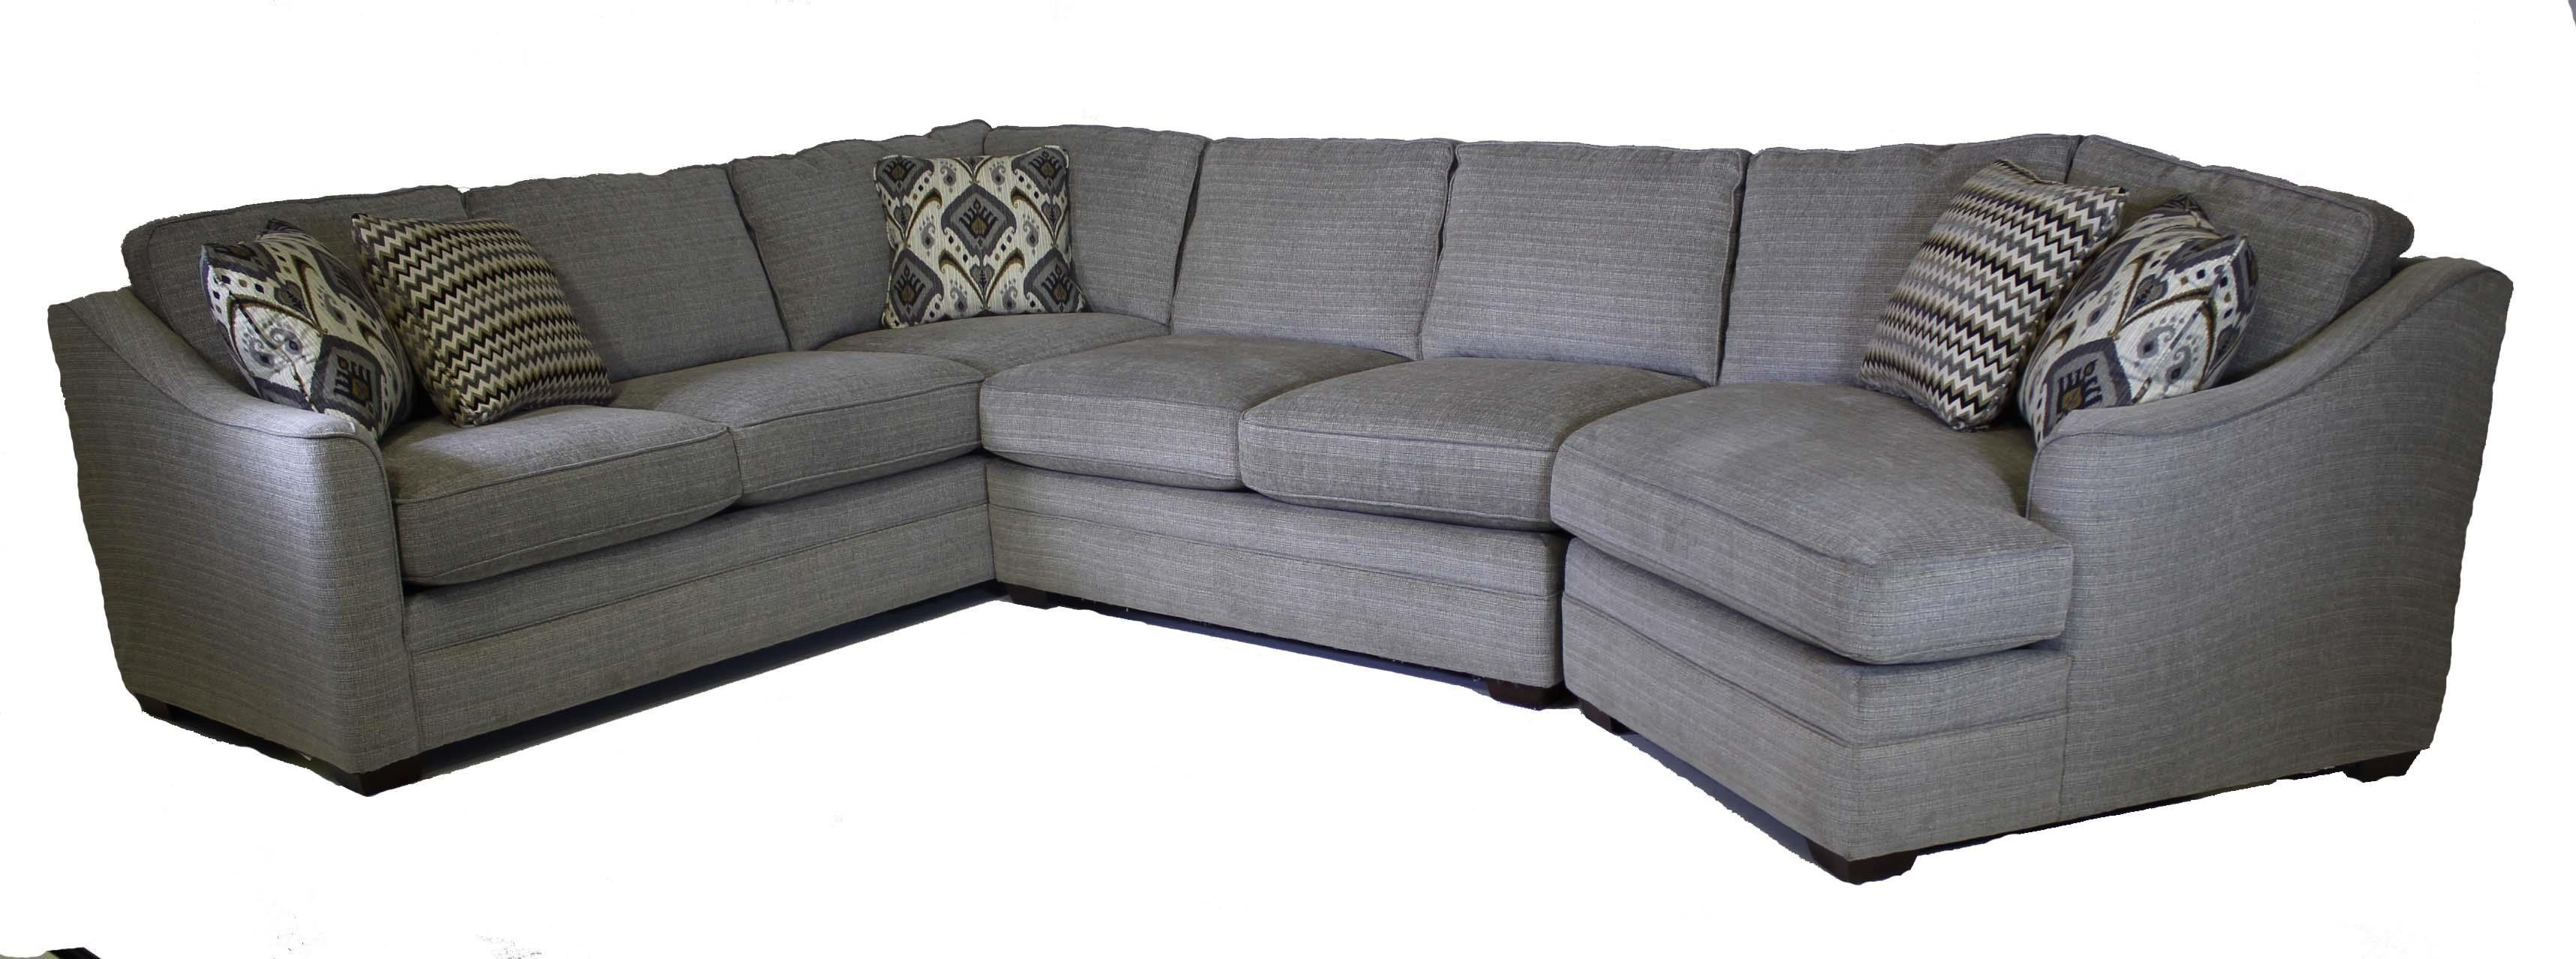 Craftmaster F9 Custom Collection Customizable 3 Piece Sectional Within Craftmaster Sectional (Image 6 of 15)